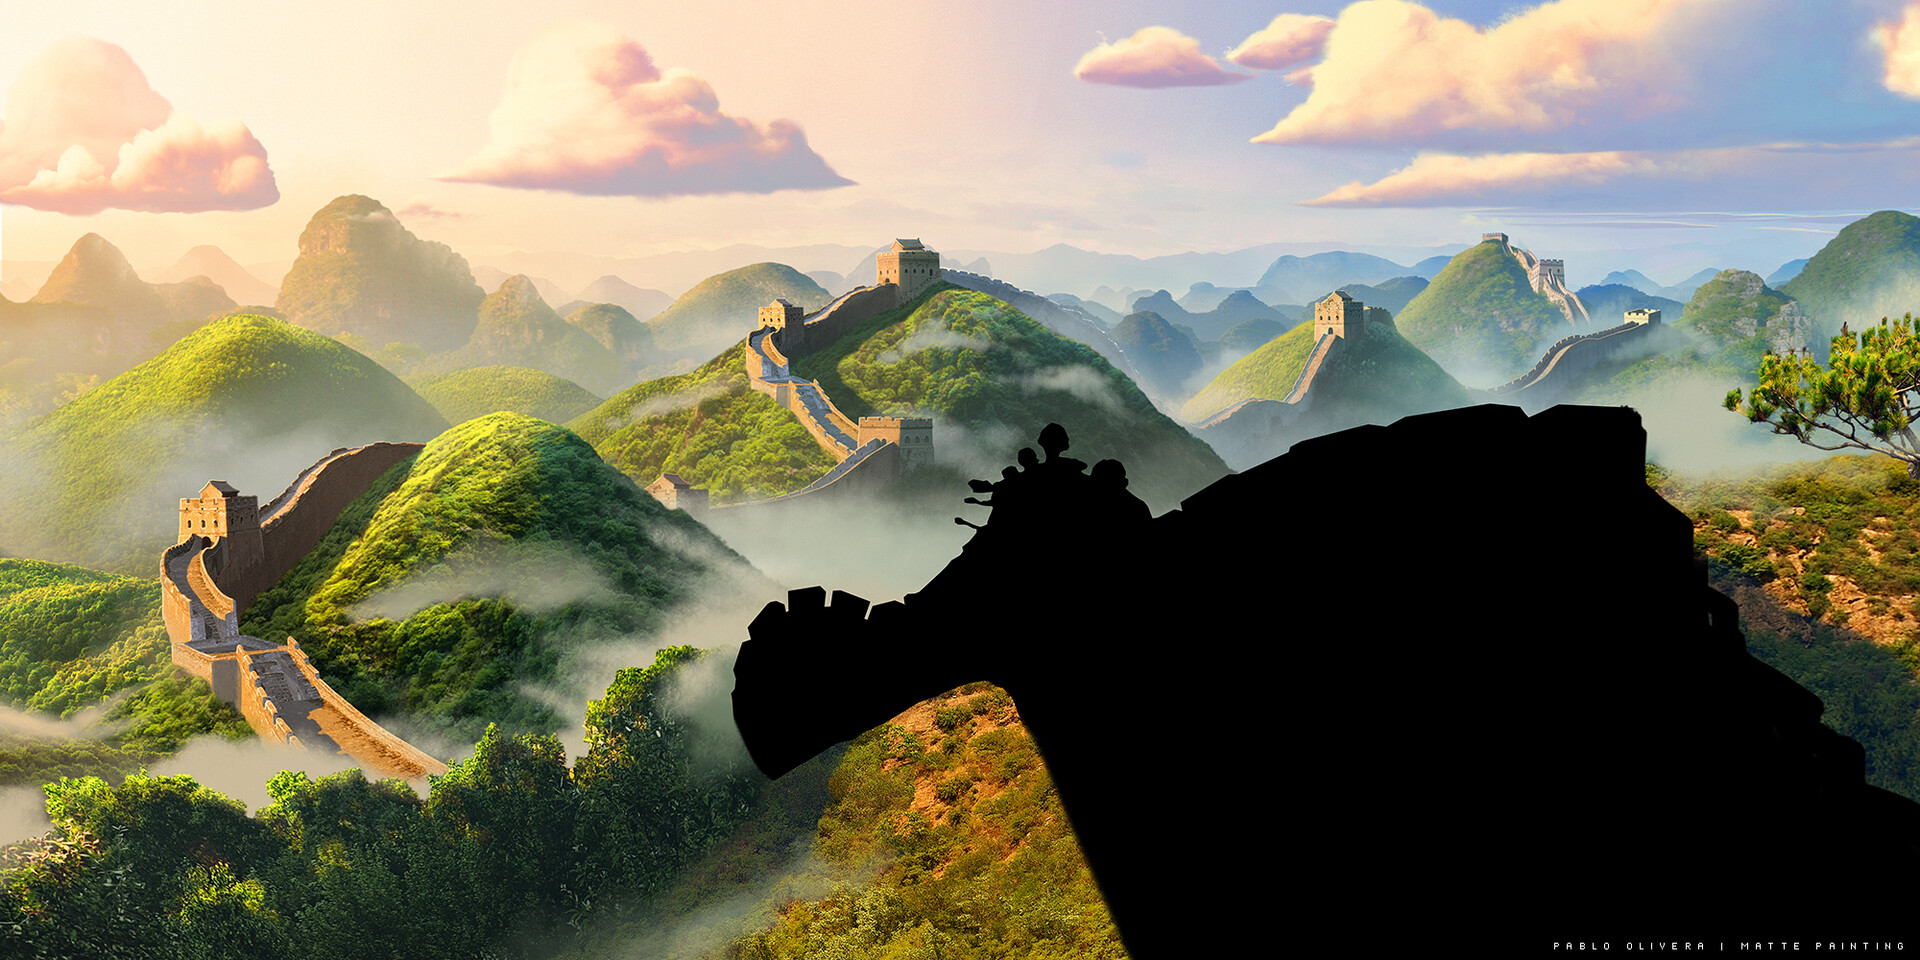 Pablo olivera lil dicky earth china mattepainting